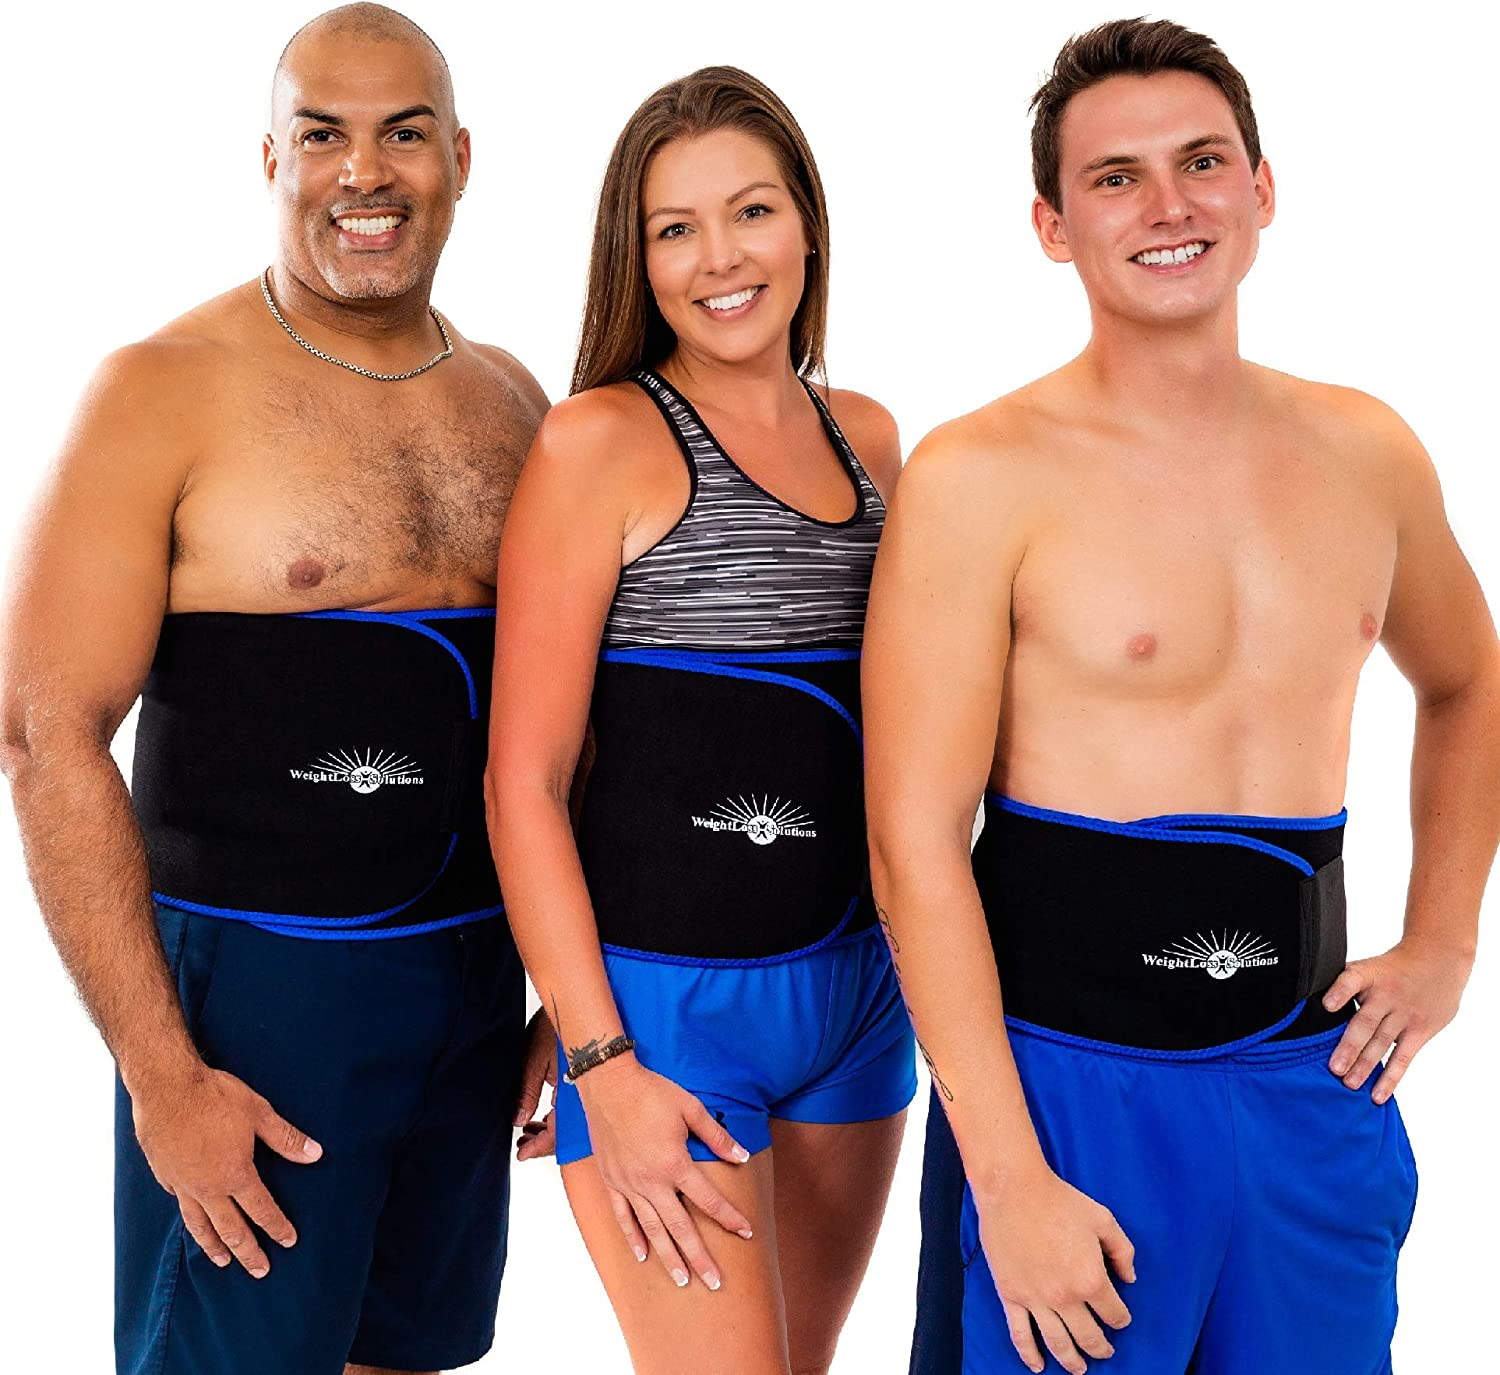 B3CC Reduce Weight Electric Body Fat Burner Slimming Belt Men and Women